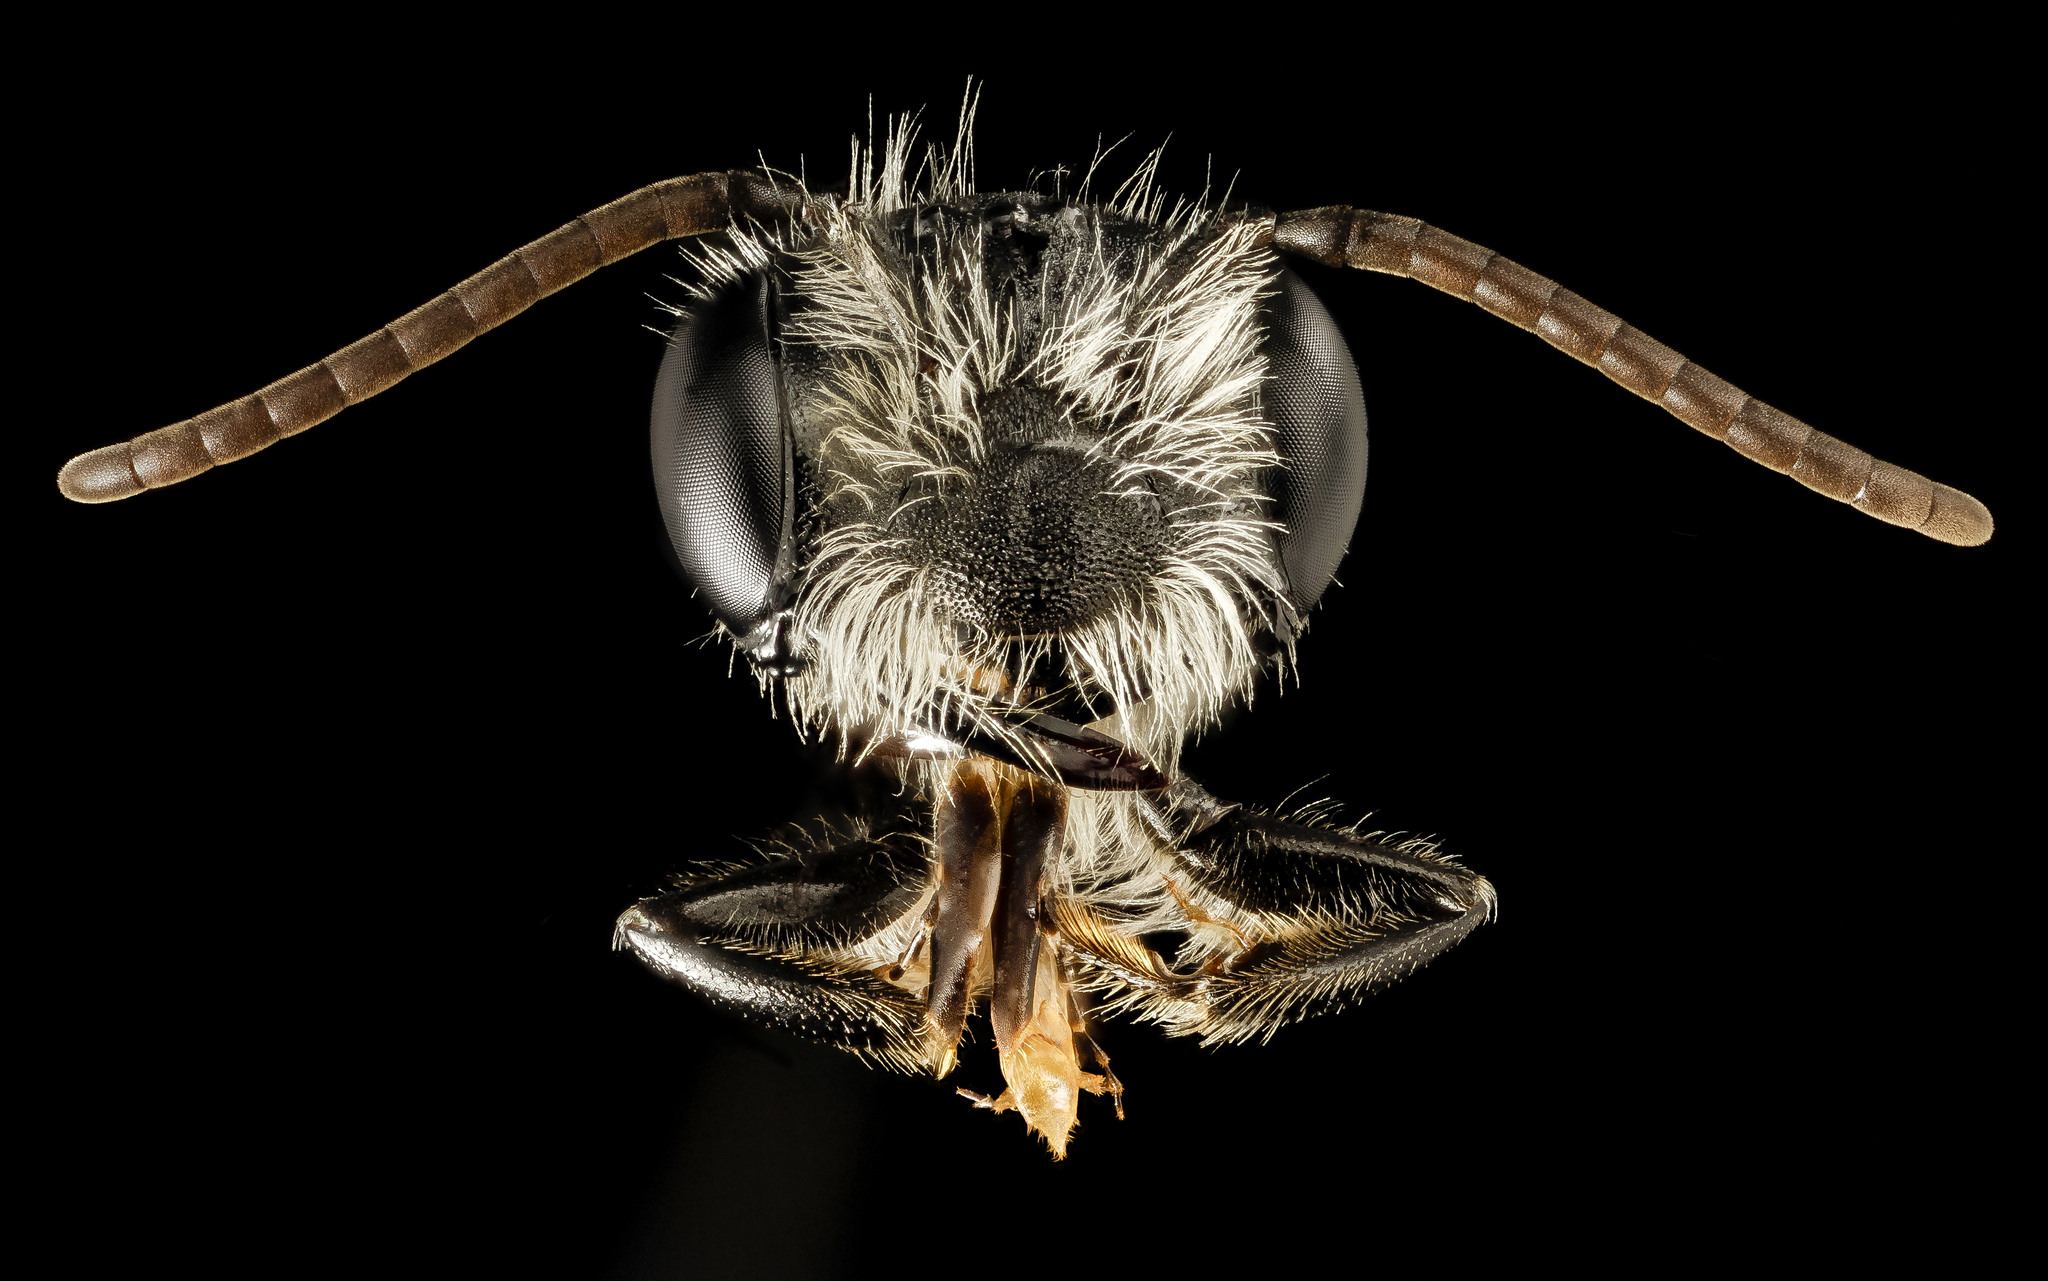 7 Close-Up Pictures Reveal the Beauty of Bees